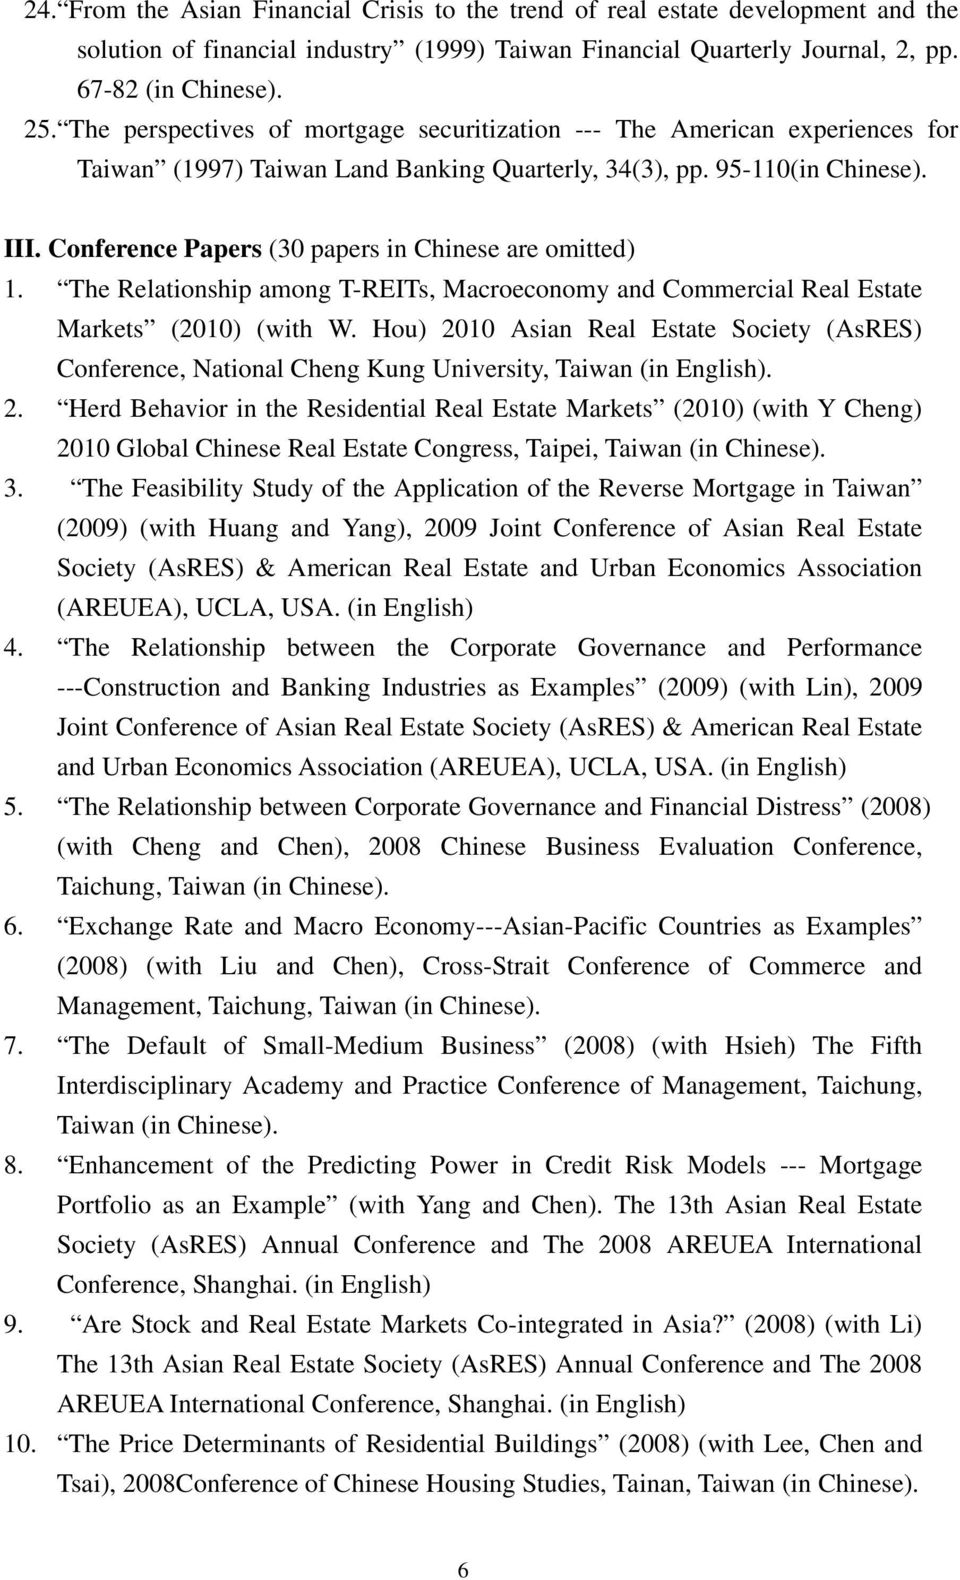 Conference Papers (30 papers in Chinese are omitted) 1. The Relationship among T-REITs, Macroeconomy and Commercial Real Estate Markets (2010) (with W.